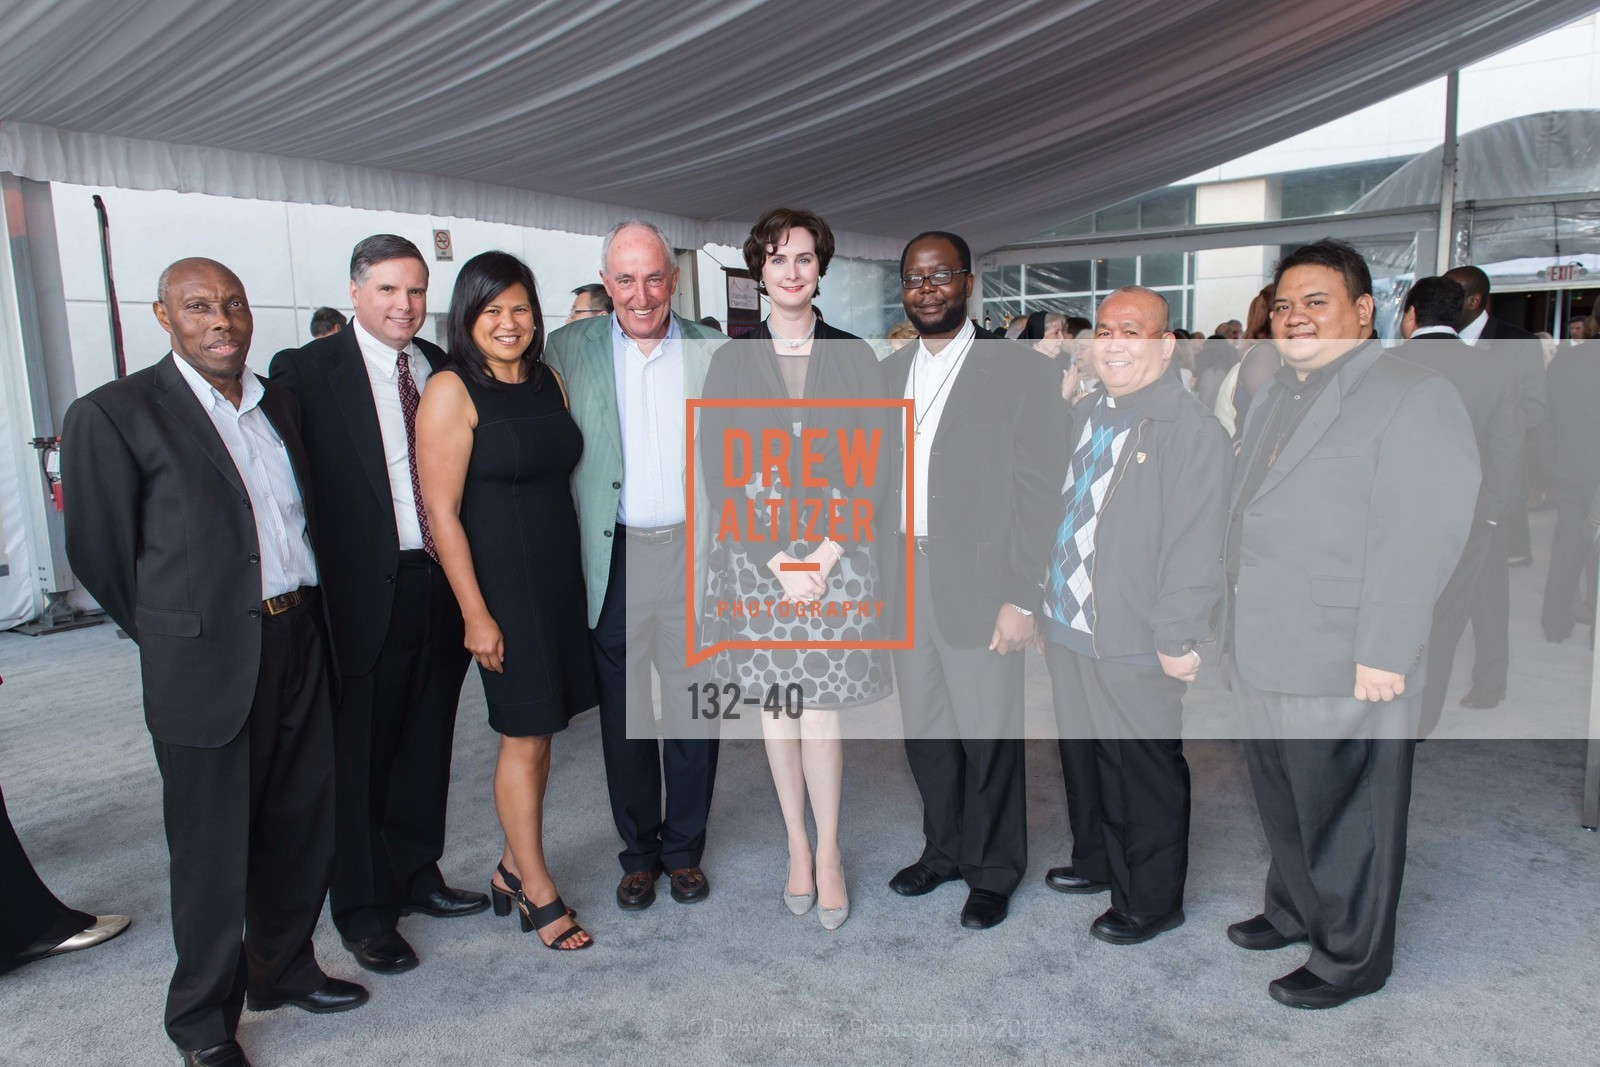 Agustin Karekezi, Hugo Kostelni, Judy Kostelni, Martin Daly, Raymond Wangala, Ubunto Suico, Francisco Bustamante,  Catholic Charities Loaves & Fishes, St. Regis, April 18th, 2015,Drew Altizer, Drew Altizer Photography, full-service agency, private events, San Francisco photographer, photographer california